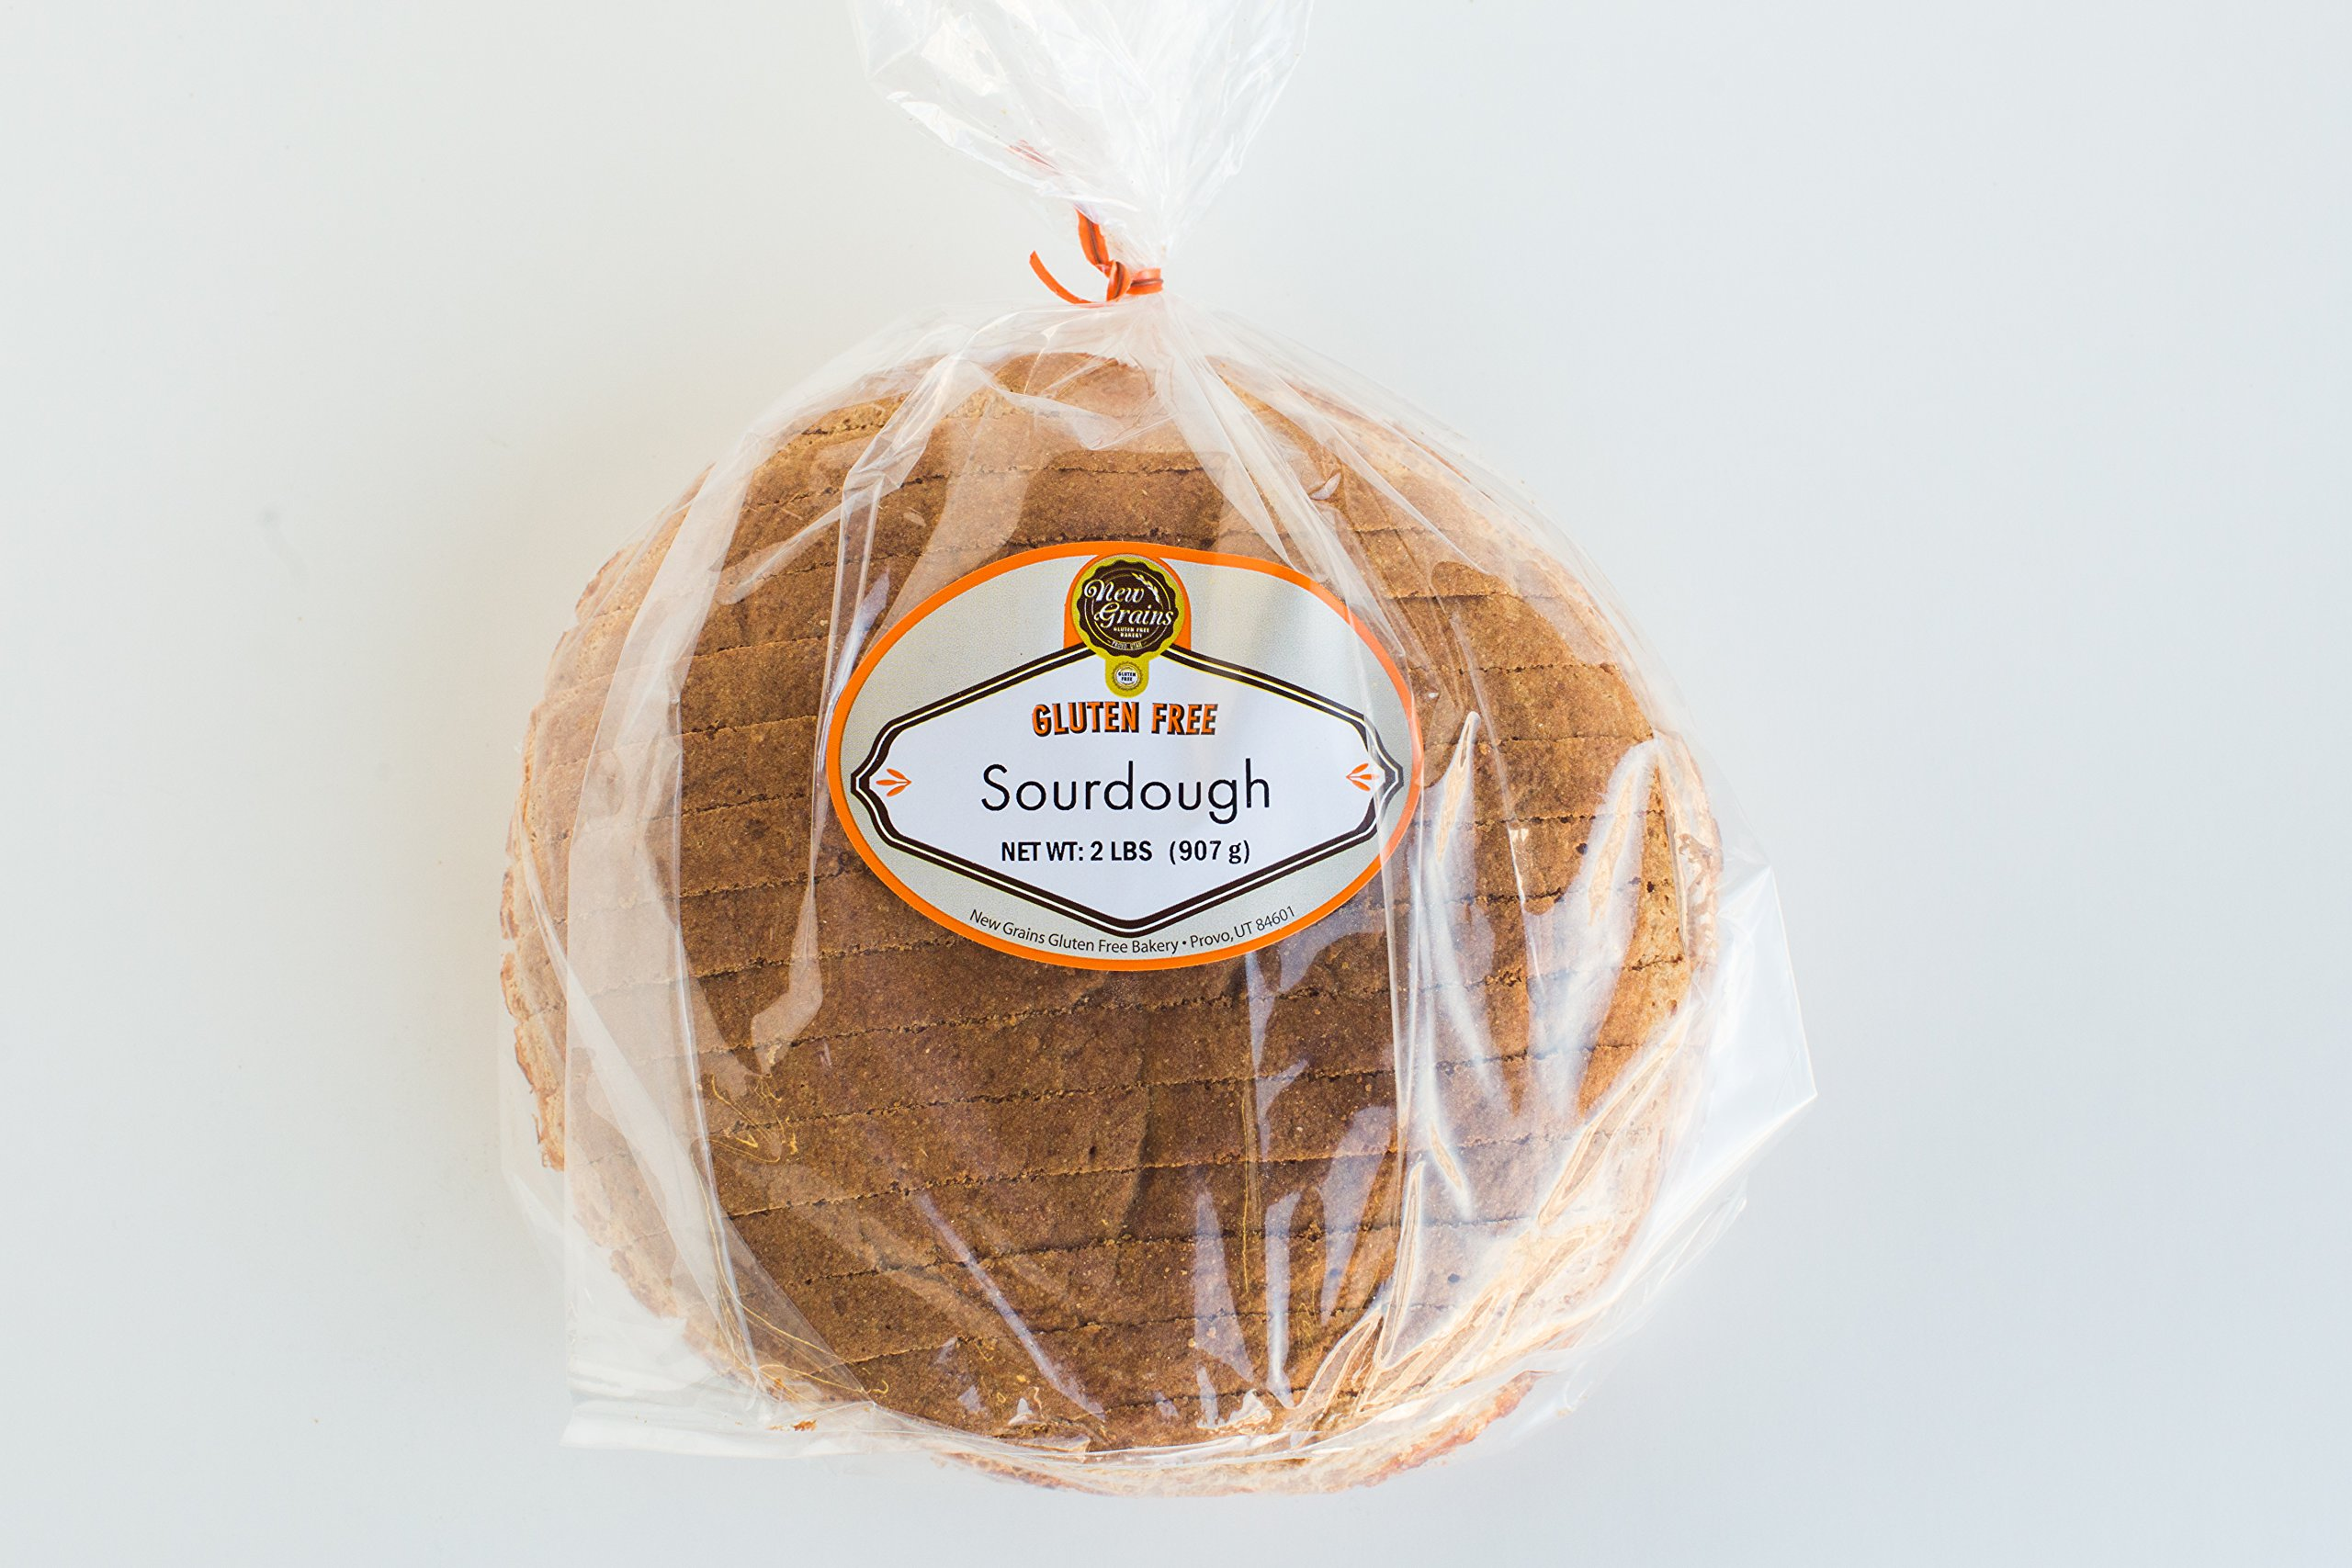 New Grains Gluten Free Sourdough San Francisco Style Bread, 32 oz Loaf